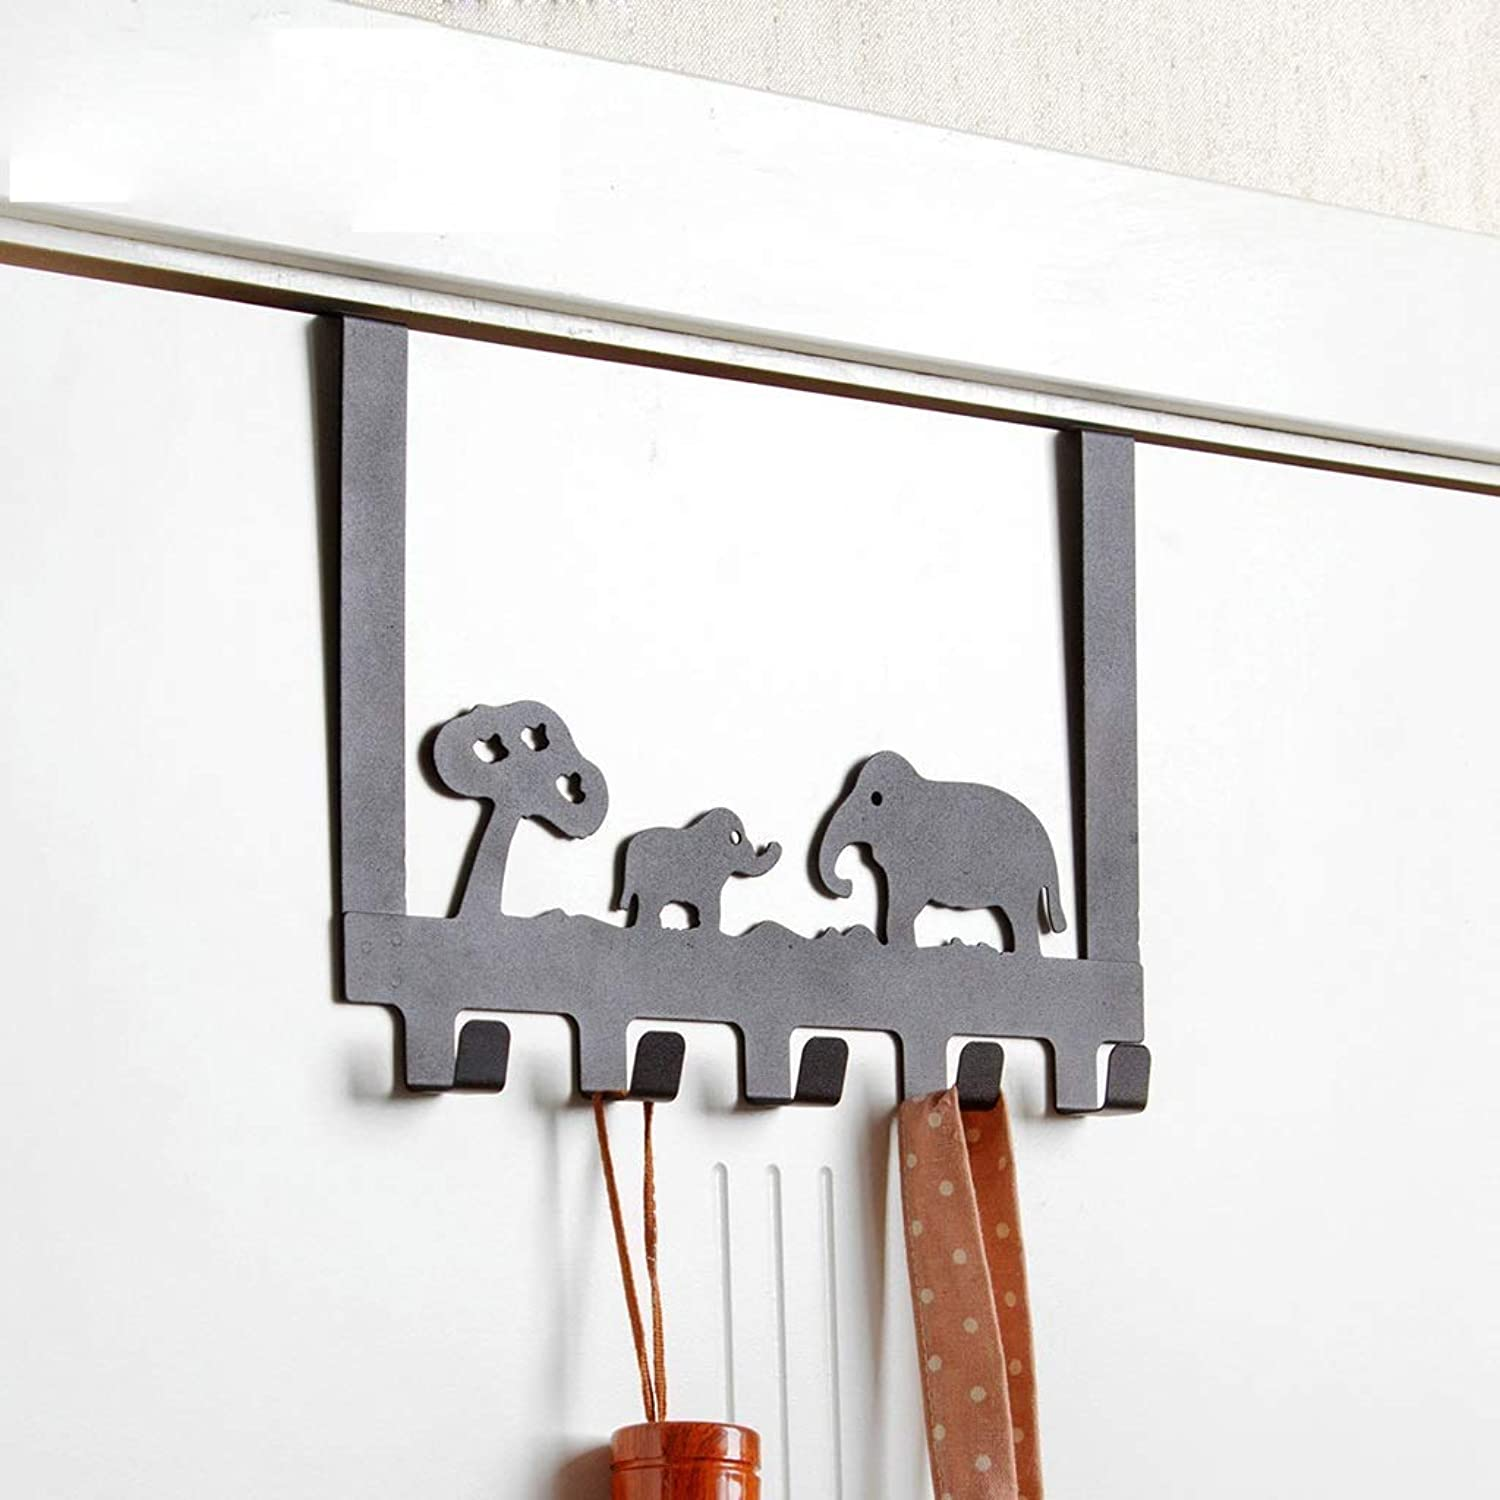 XUYRENP Modern Minimalist Hook Cartoon Wrought Iron Hook Home Decoration Creative Door Back Coat Hook